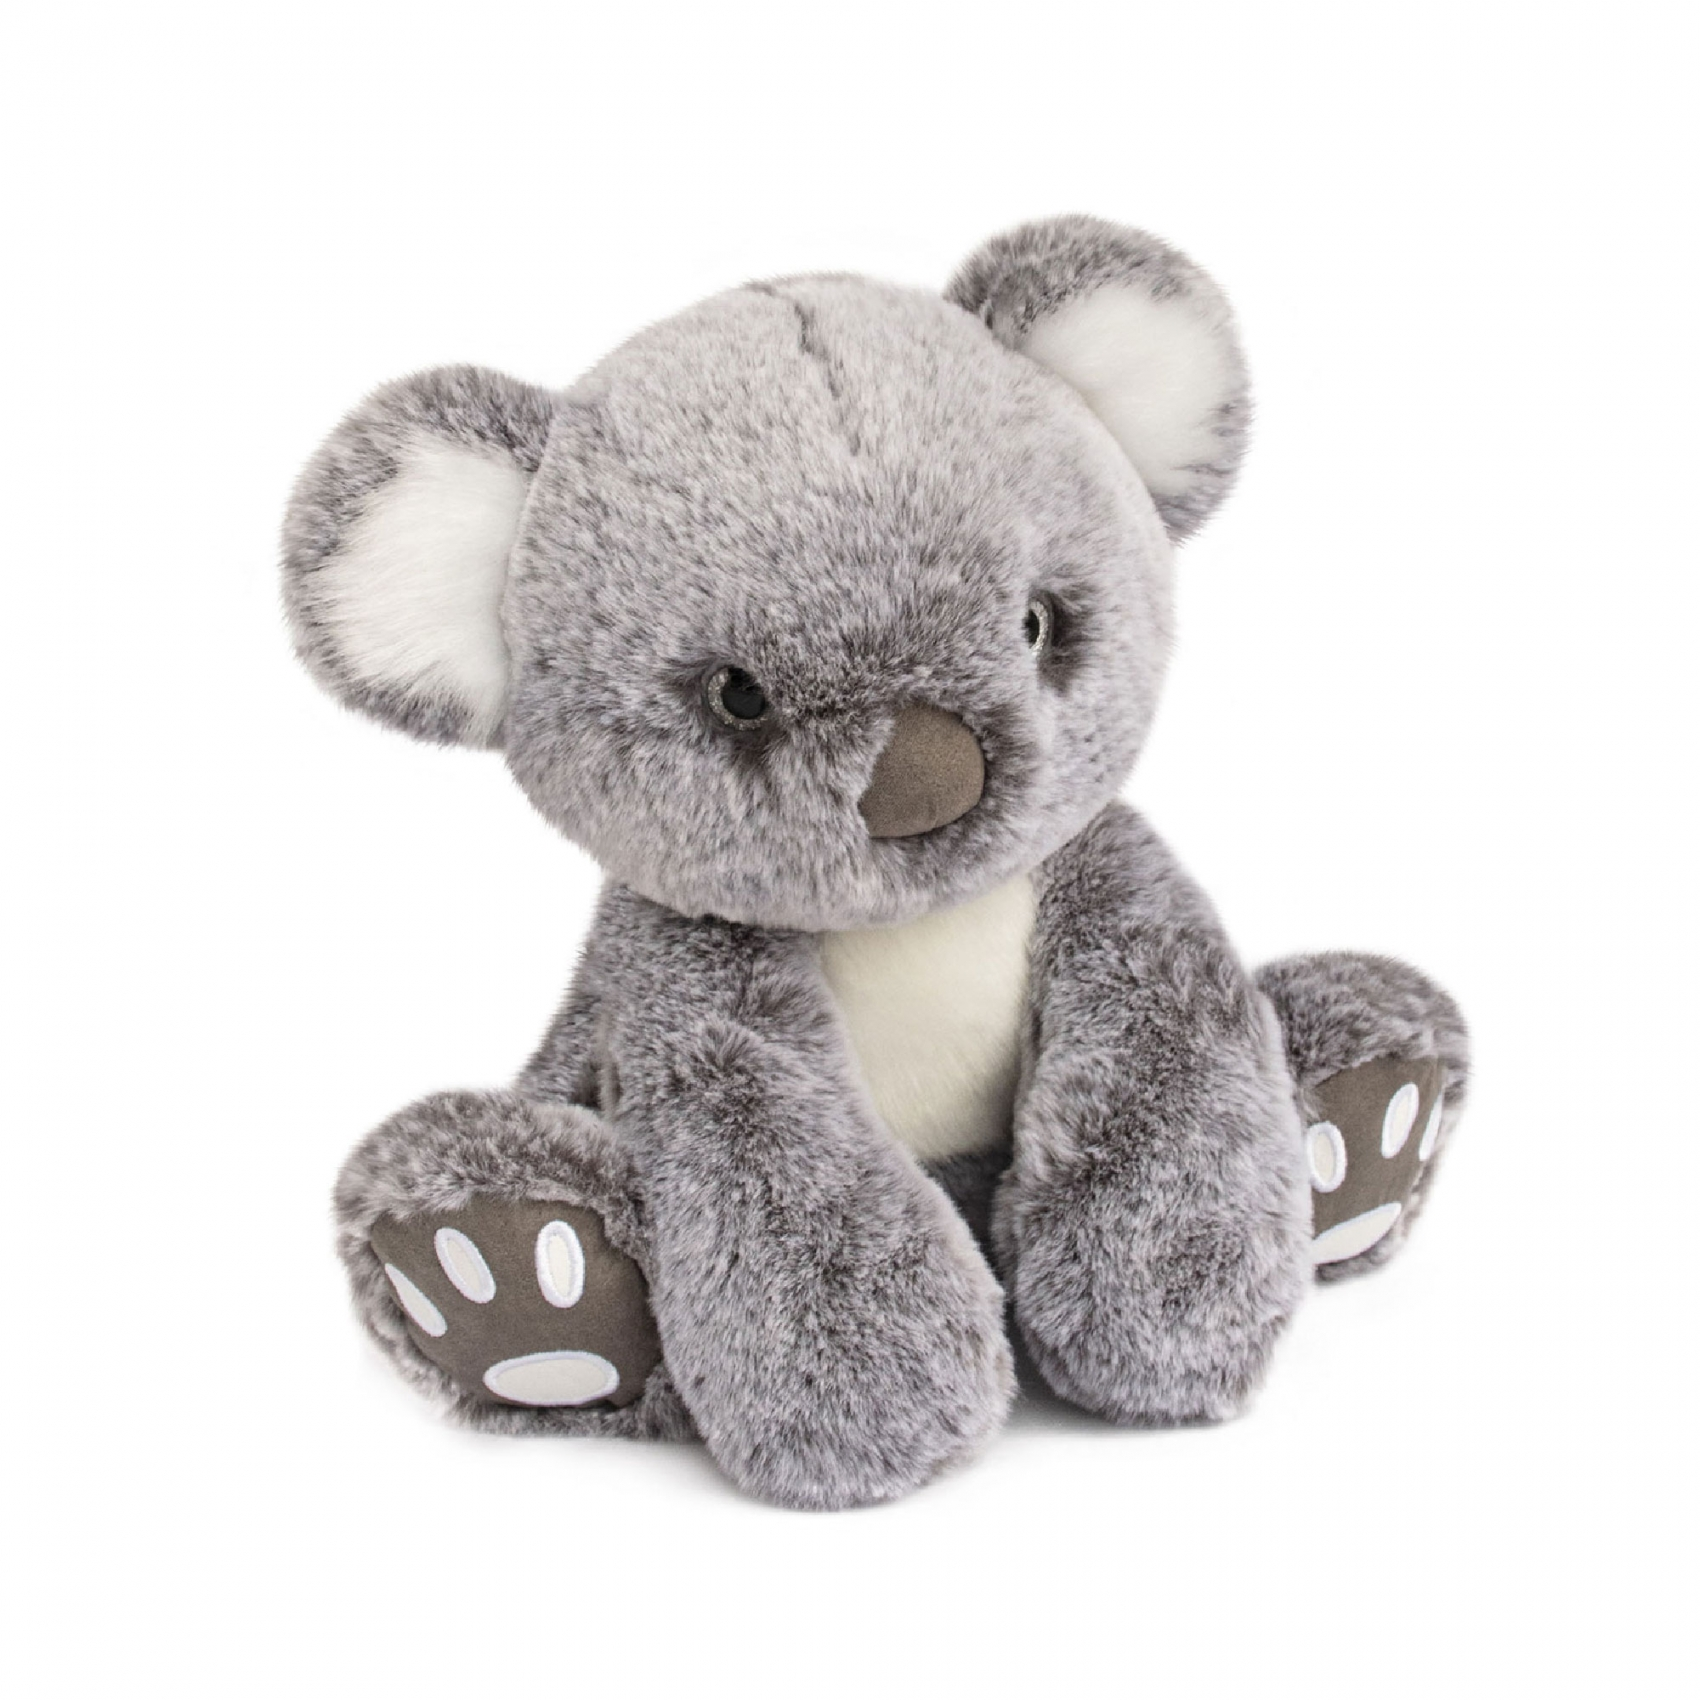 Histoire D'Ours Jungle Chic Мягкая игрушка Коала В25